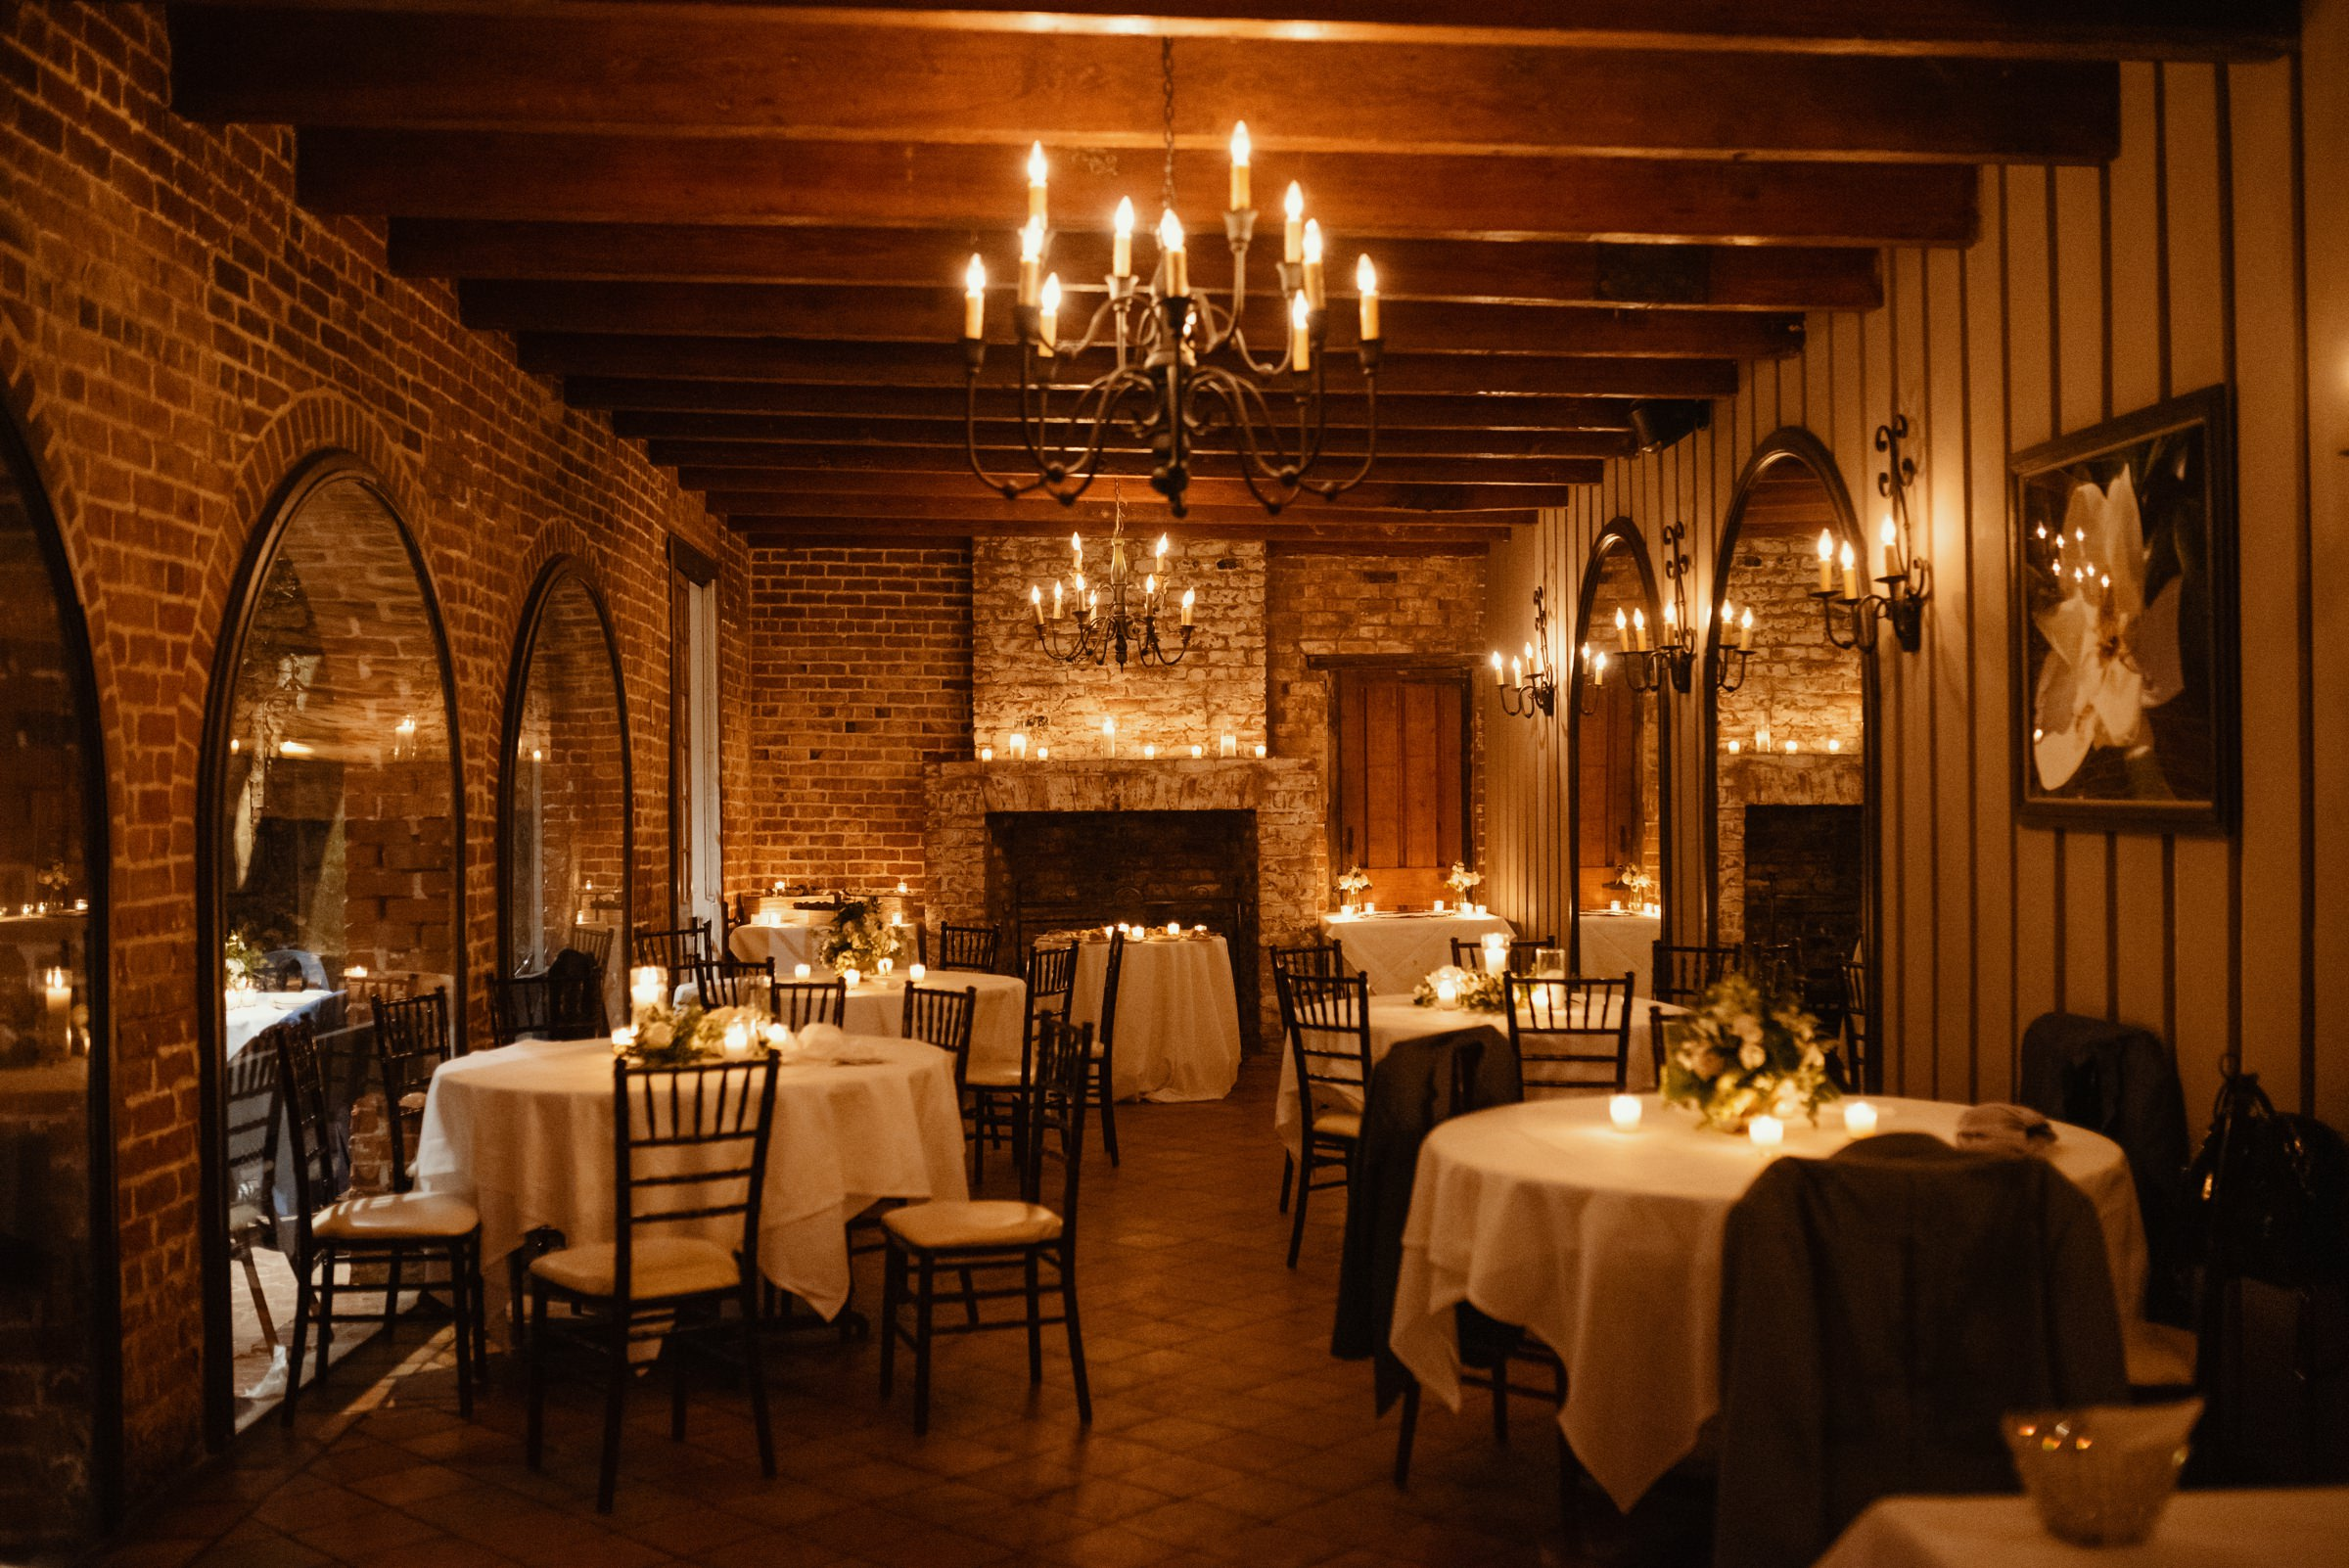 Dining room with chandeliers and candlelight - photo by Dark Roux